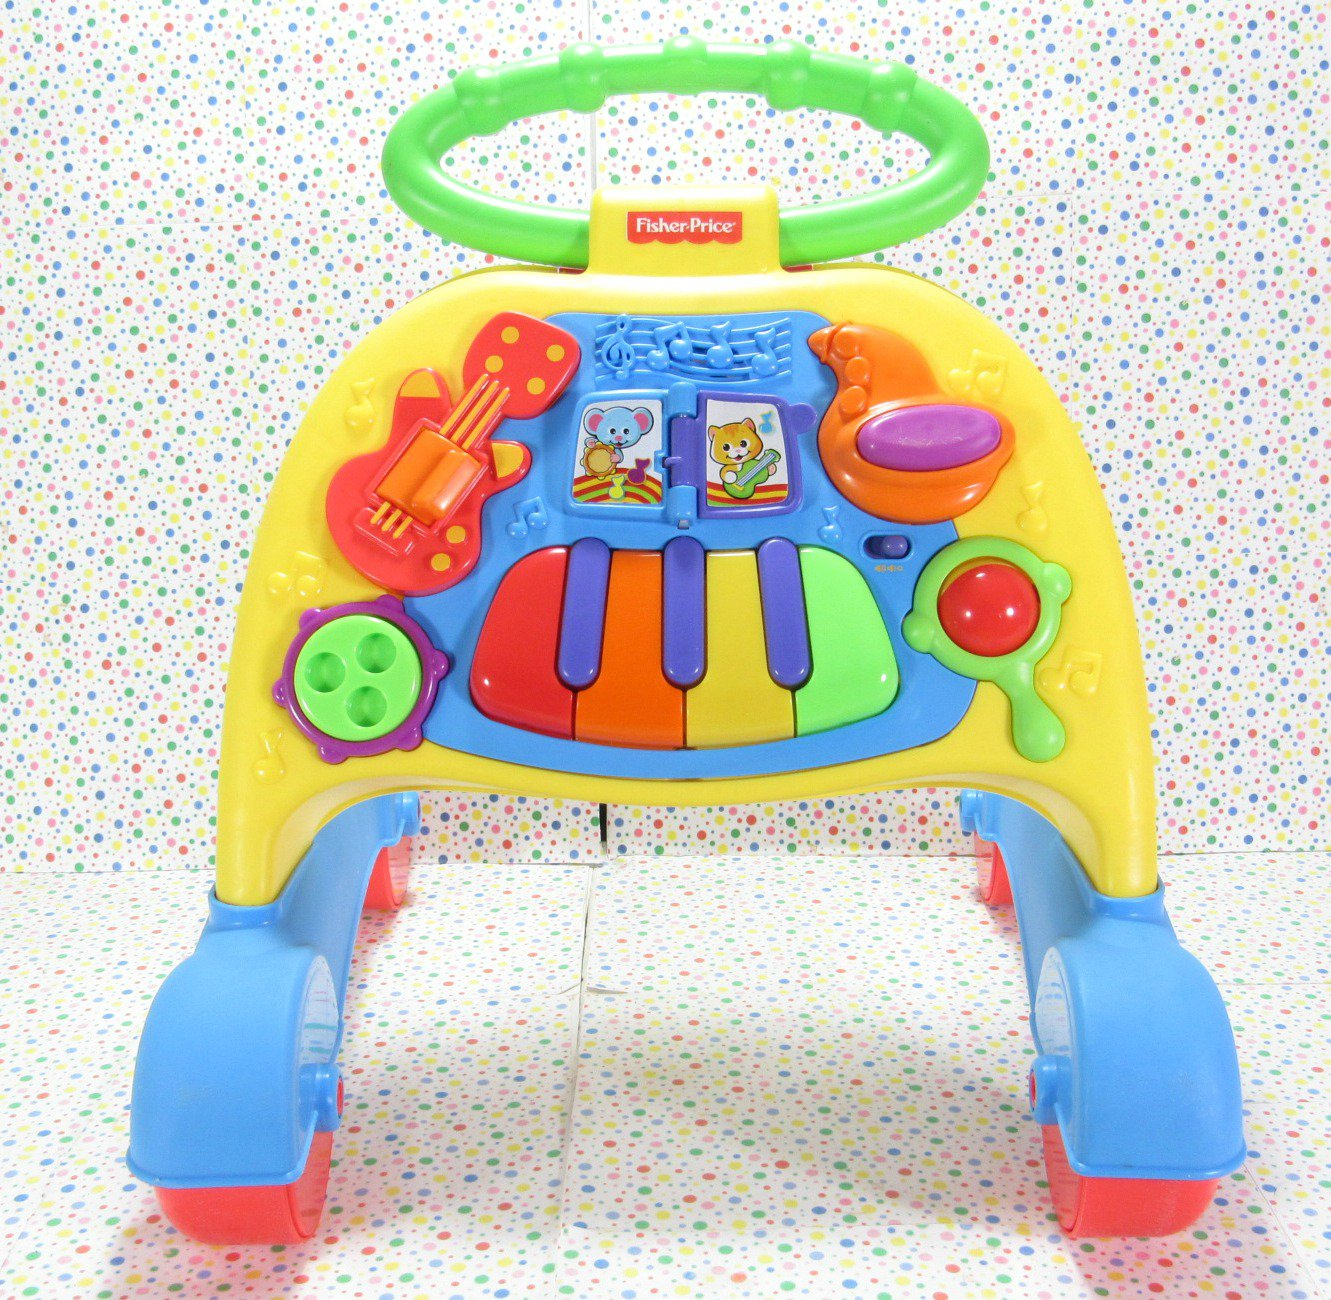 Fisher Price Brilliant Basics 2 in 1 Musical Activity Piano Walker